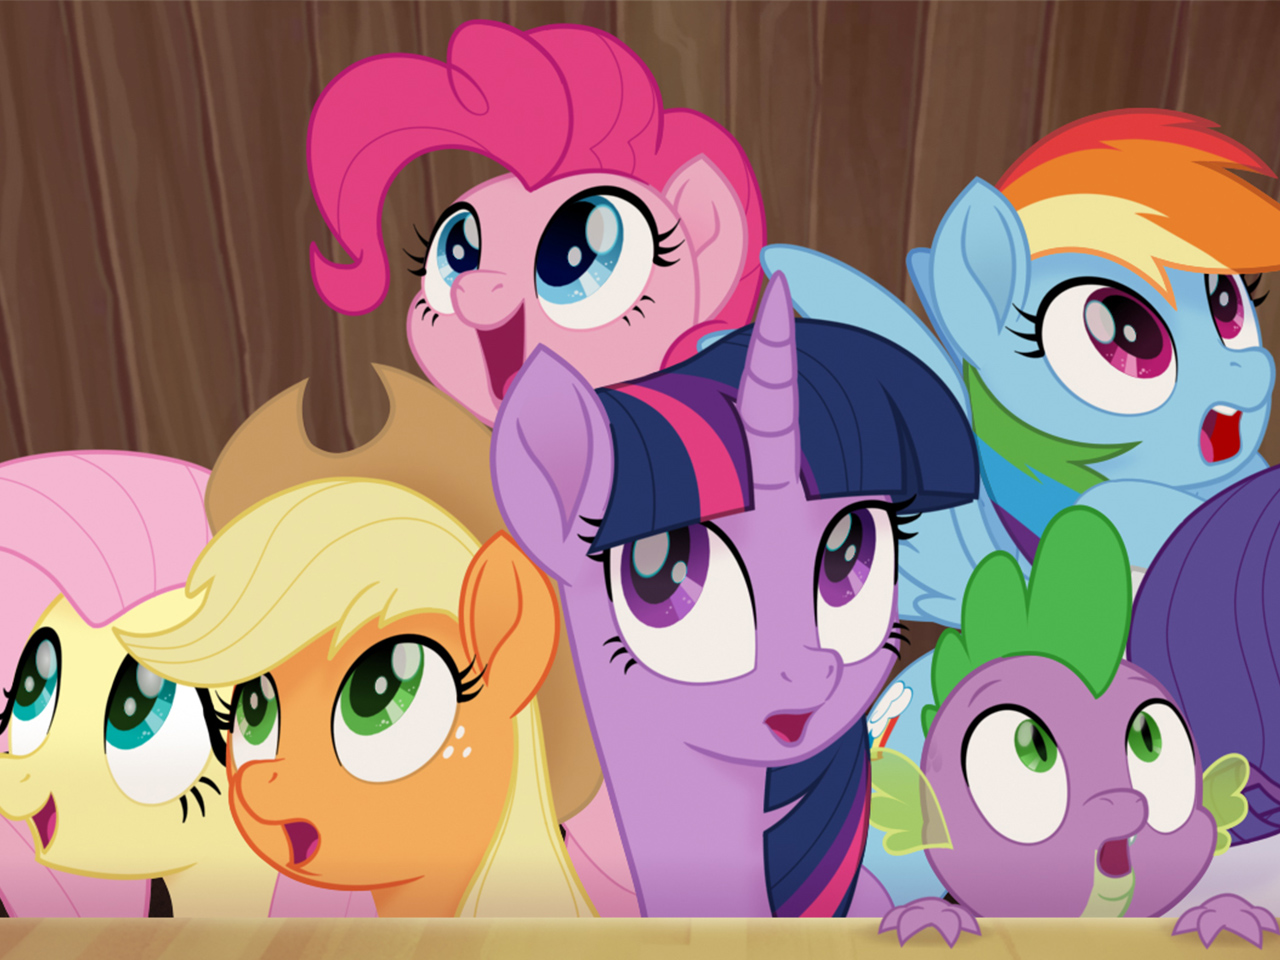 A still from the kids' animated movie My Little Pony: The Movie